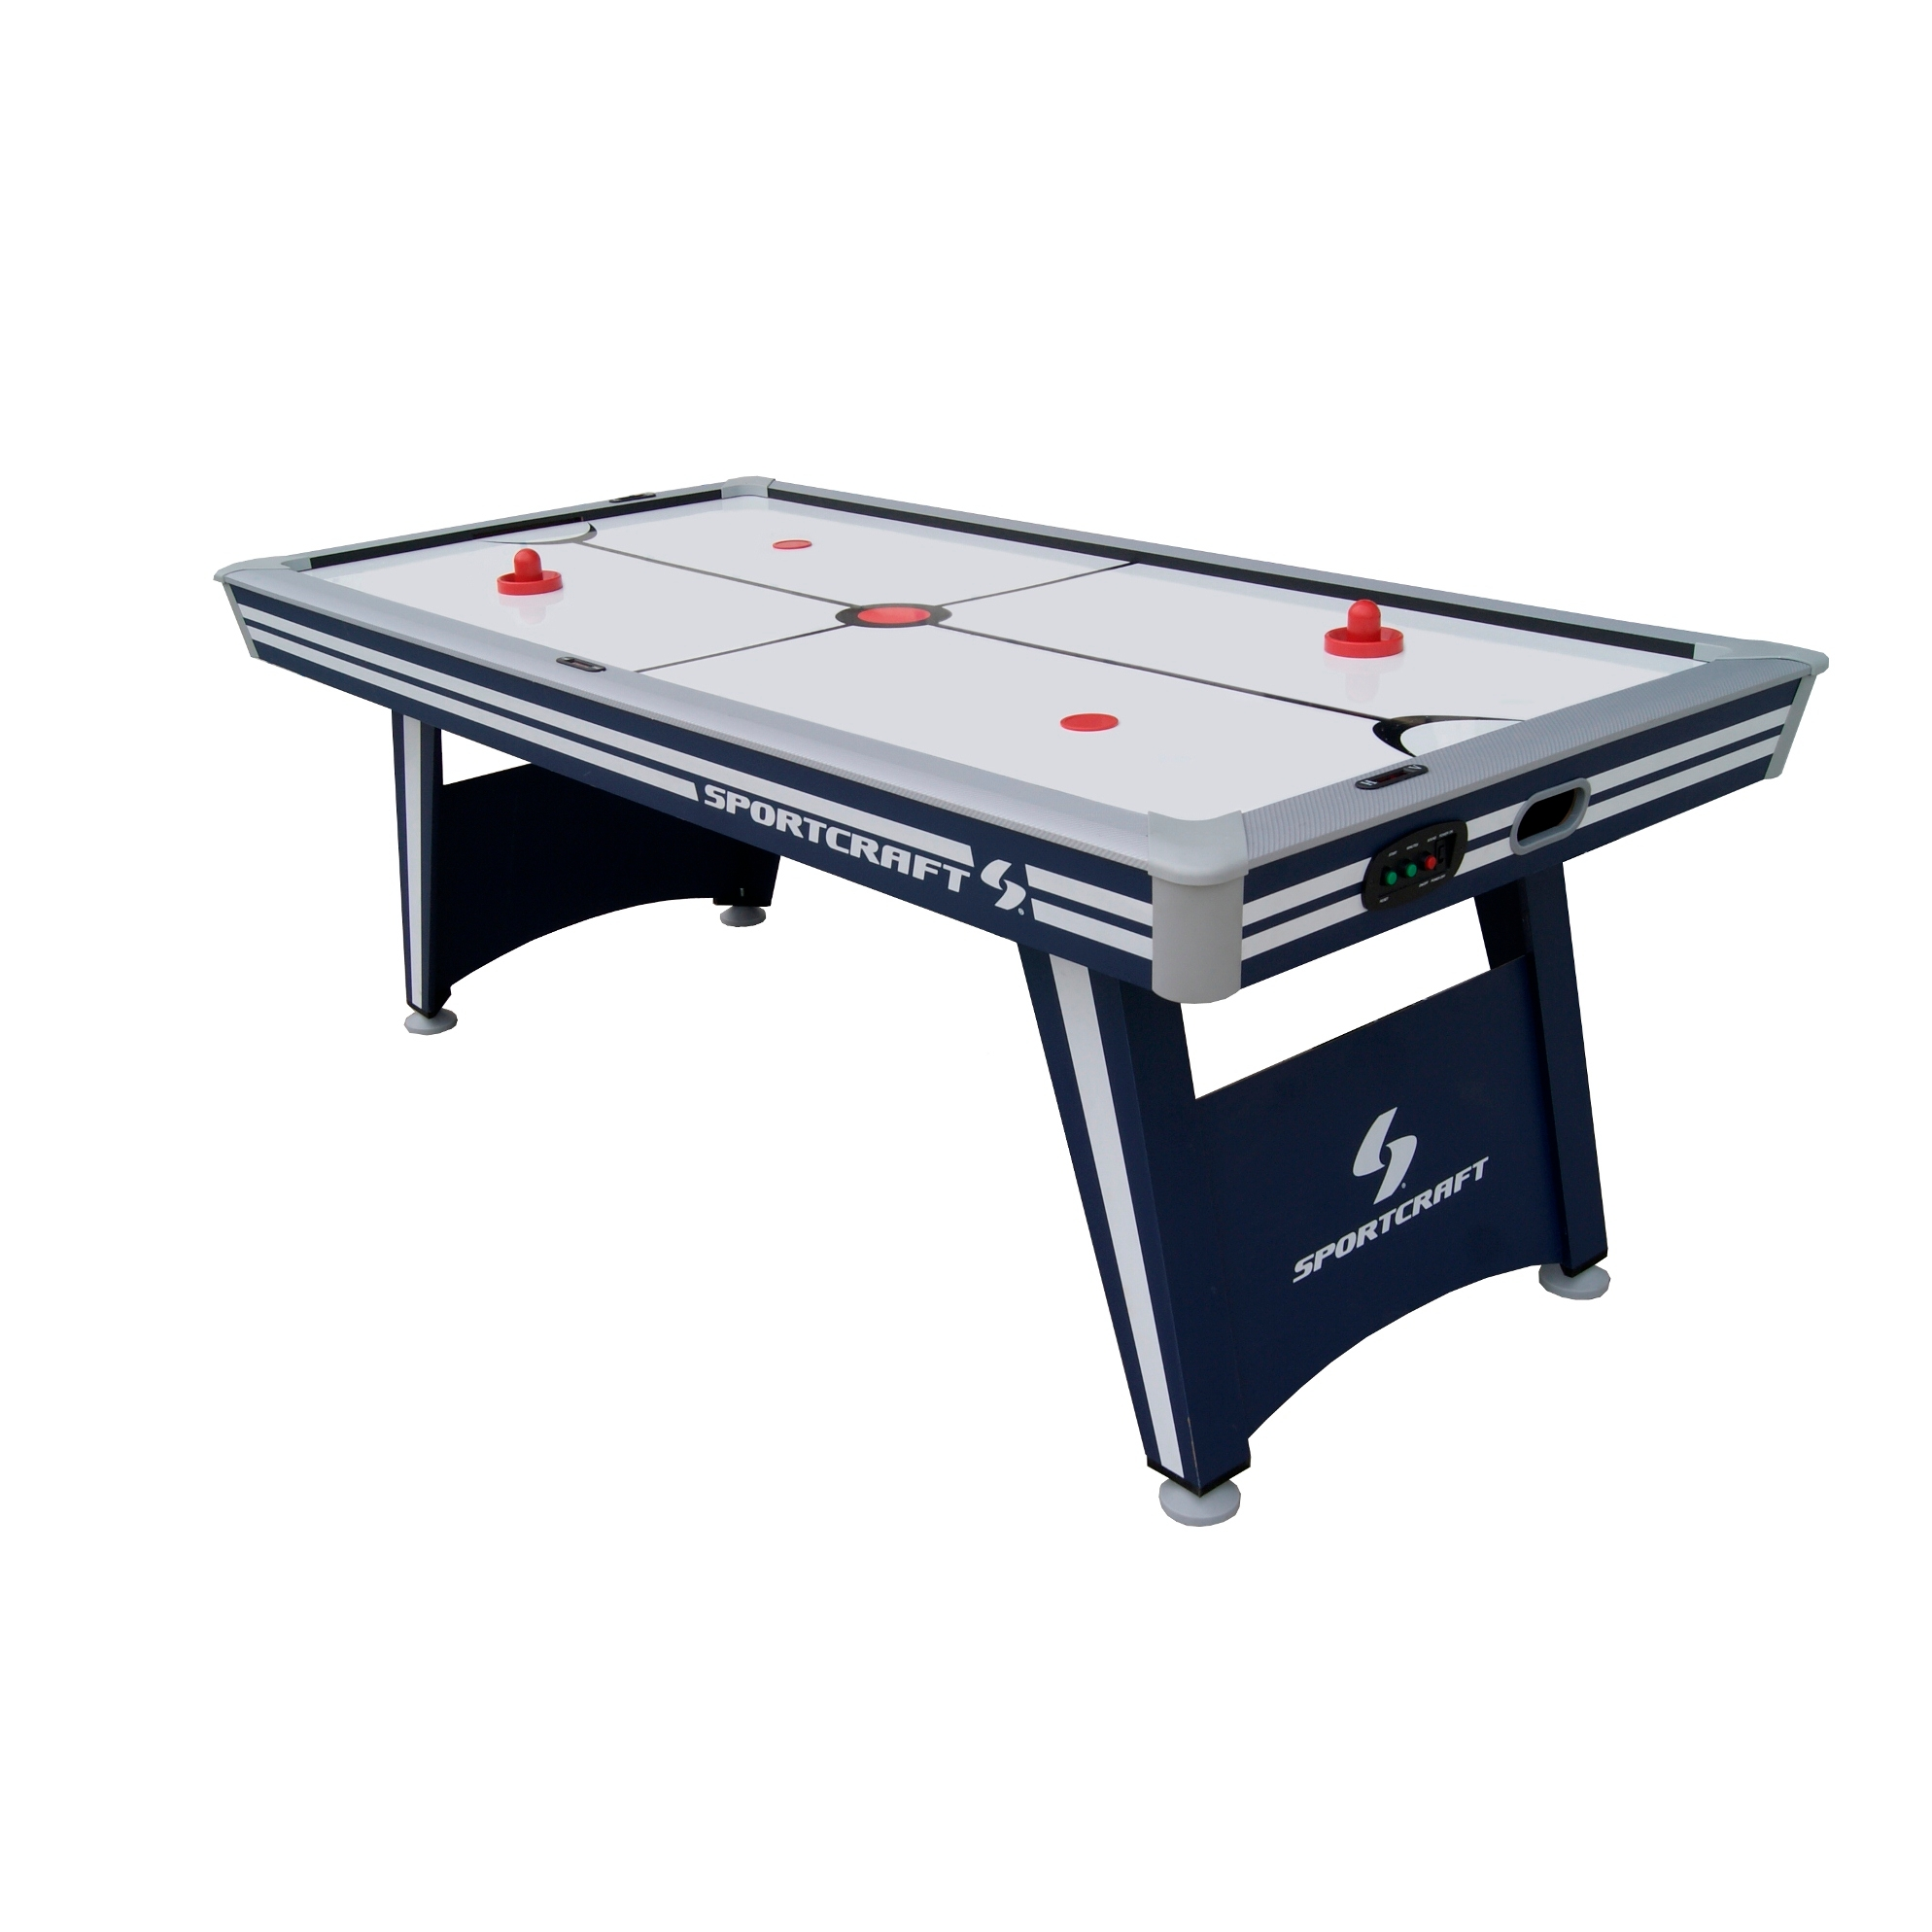 Power-Play-84in-Air-Powered-Hockey-Table-With-Table-Tennis-Conversion-Top